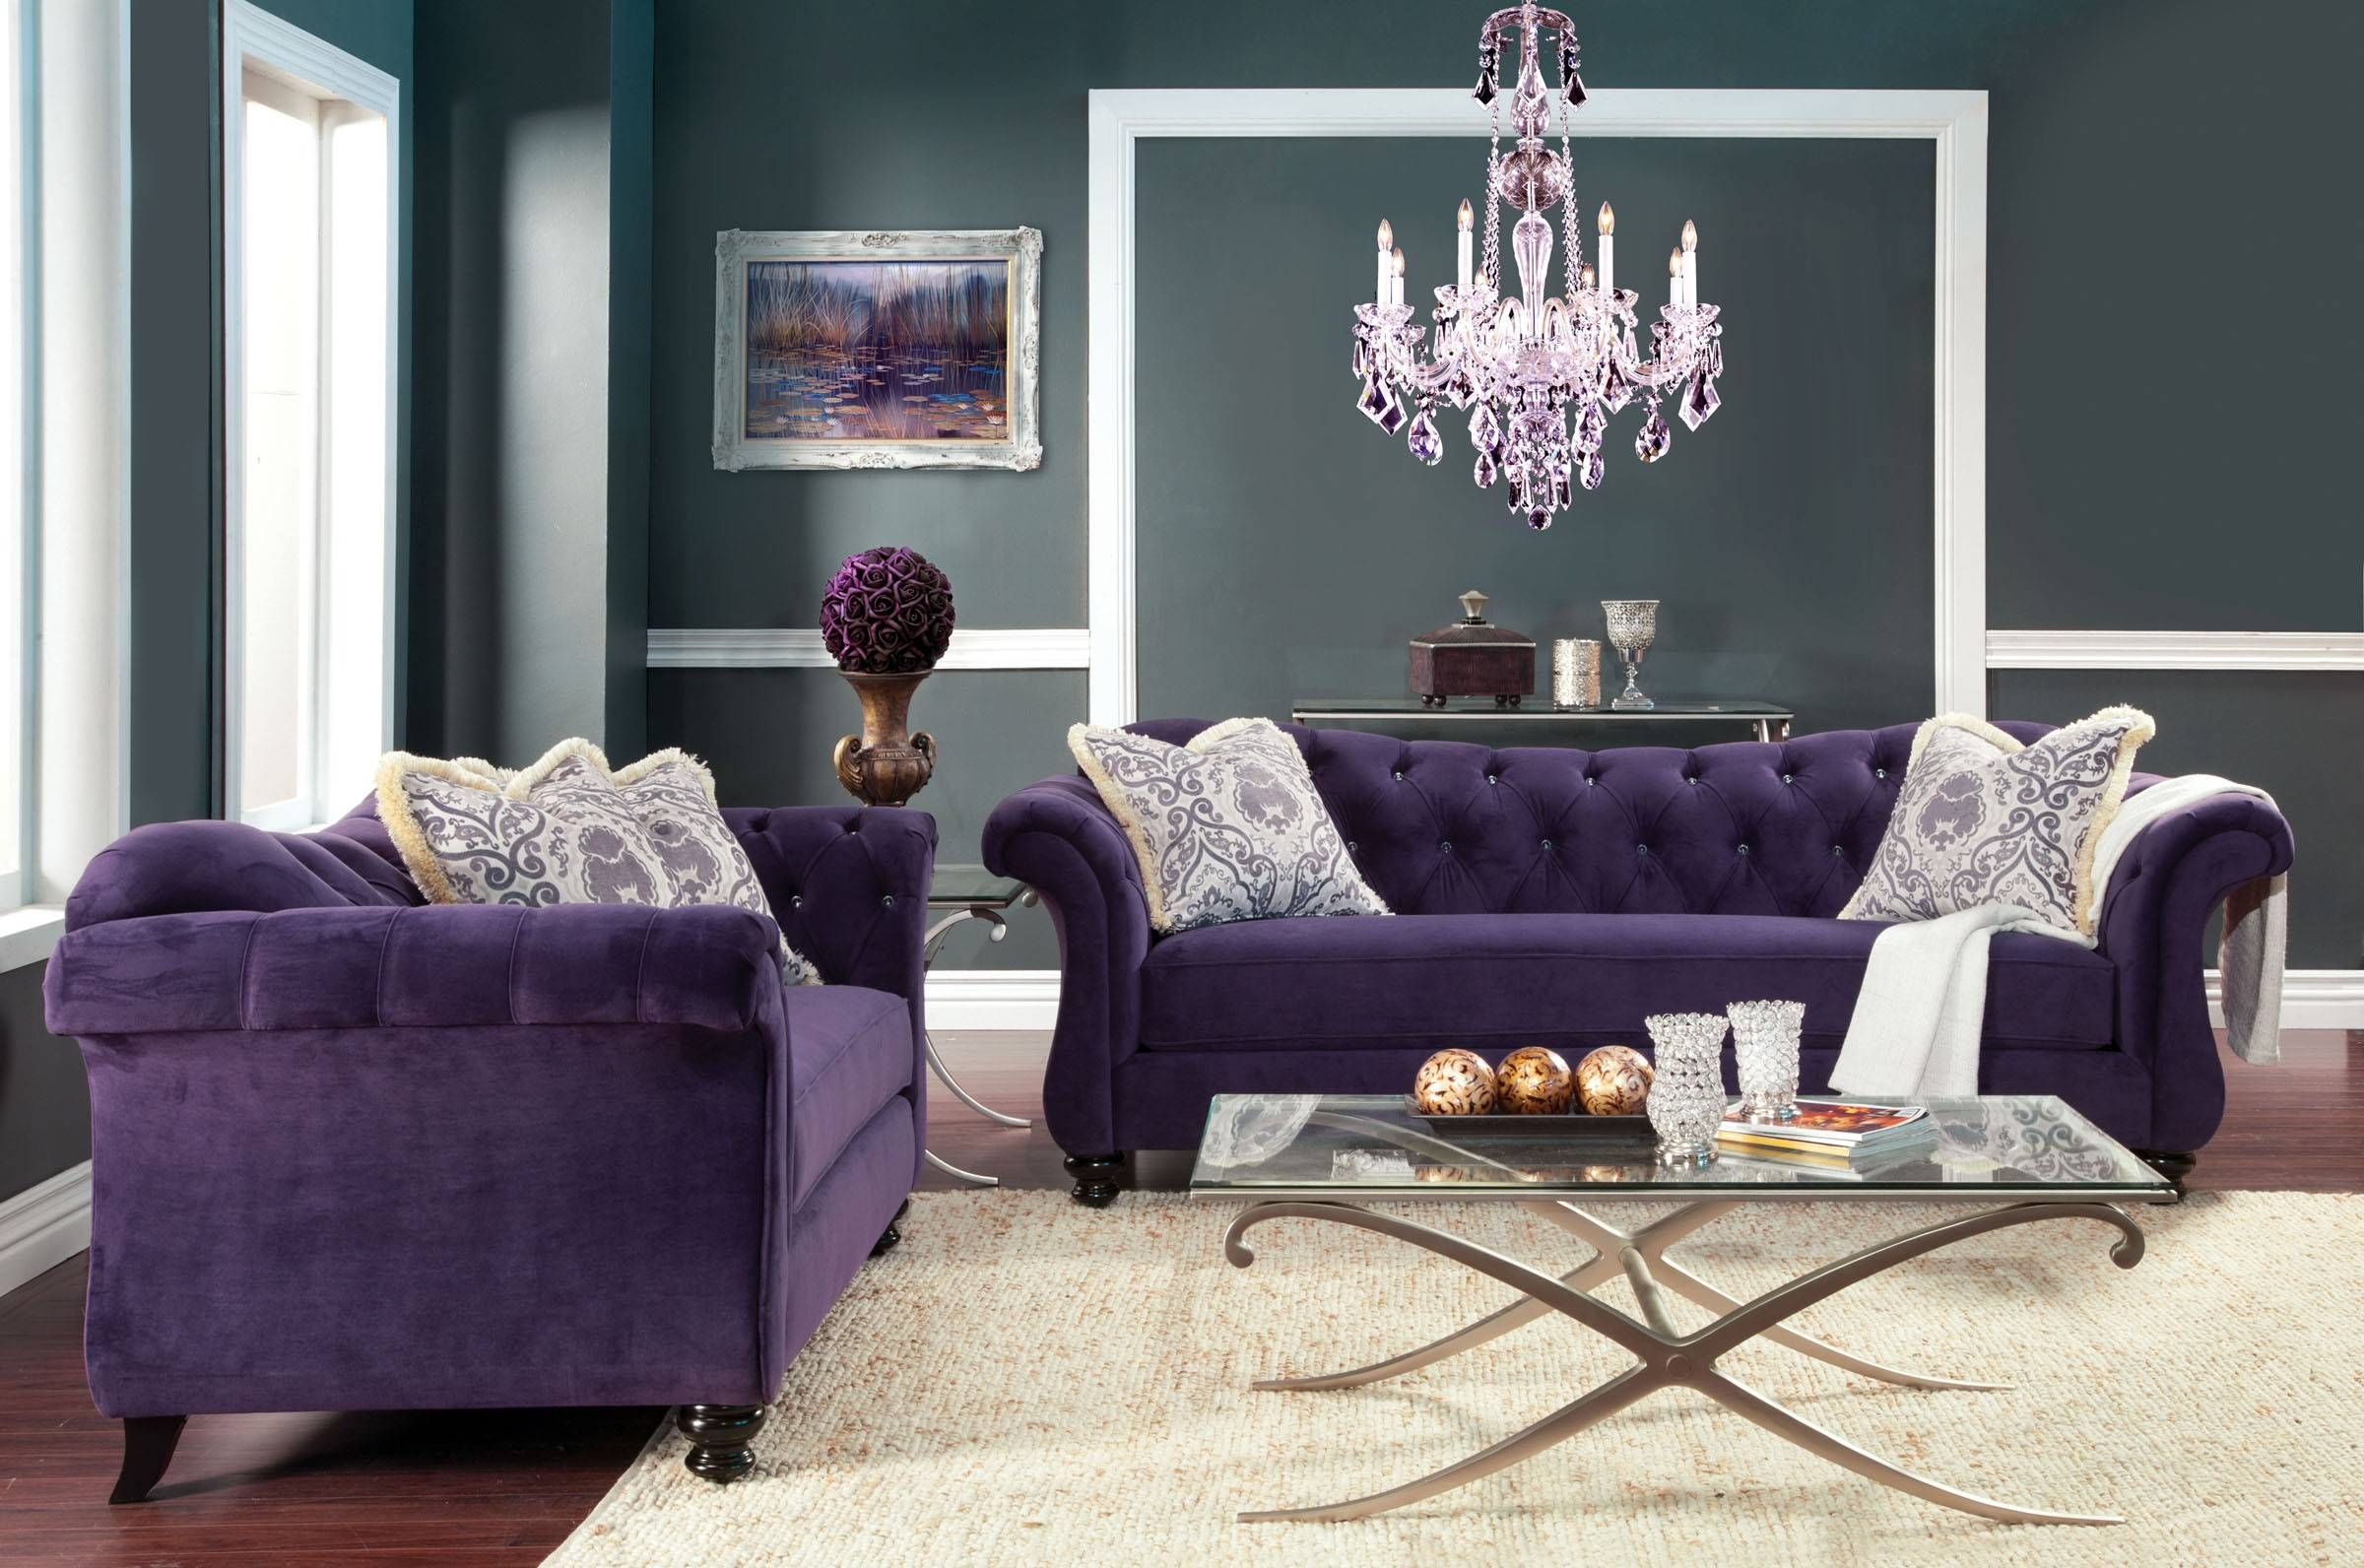 25 Best Chesterfield Sofas To Buy In 2017 throughout Purple Chesterfield Sofas (Image 2 of 15)